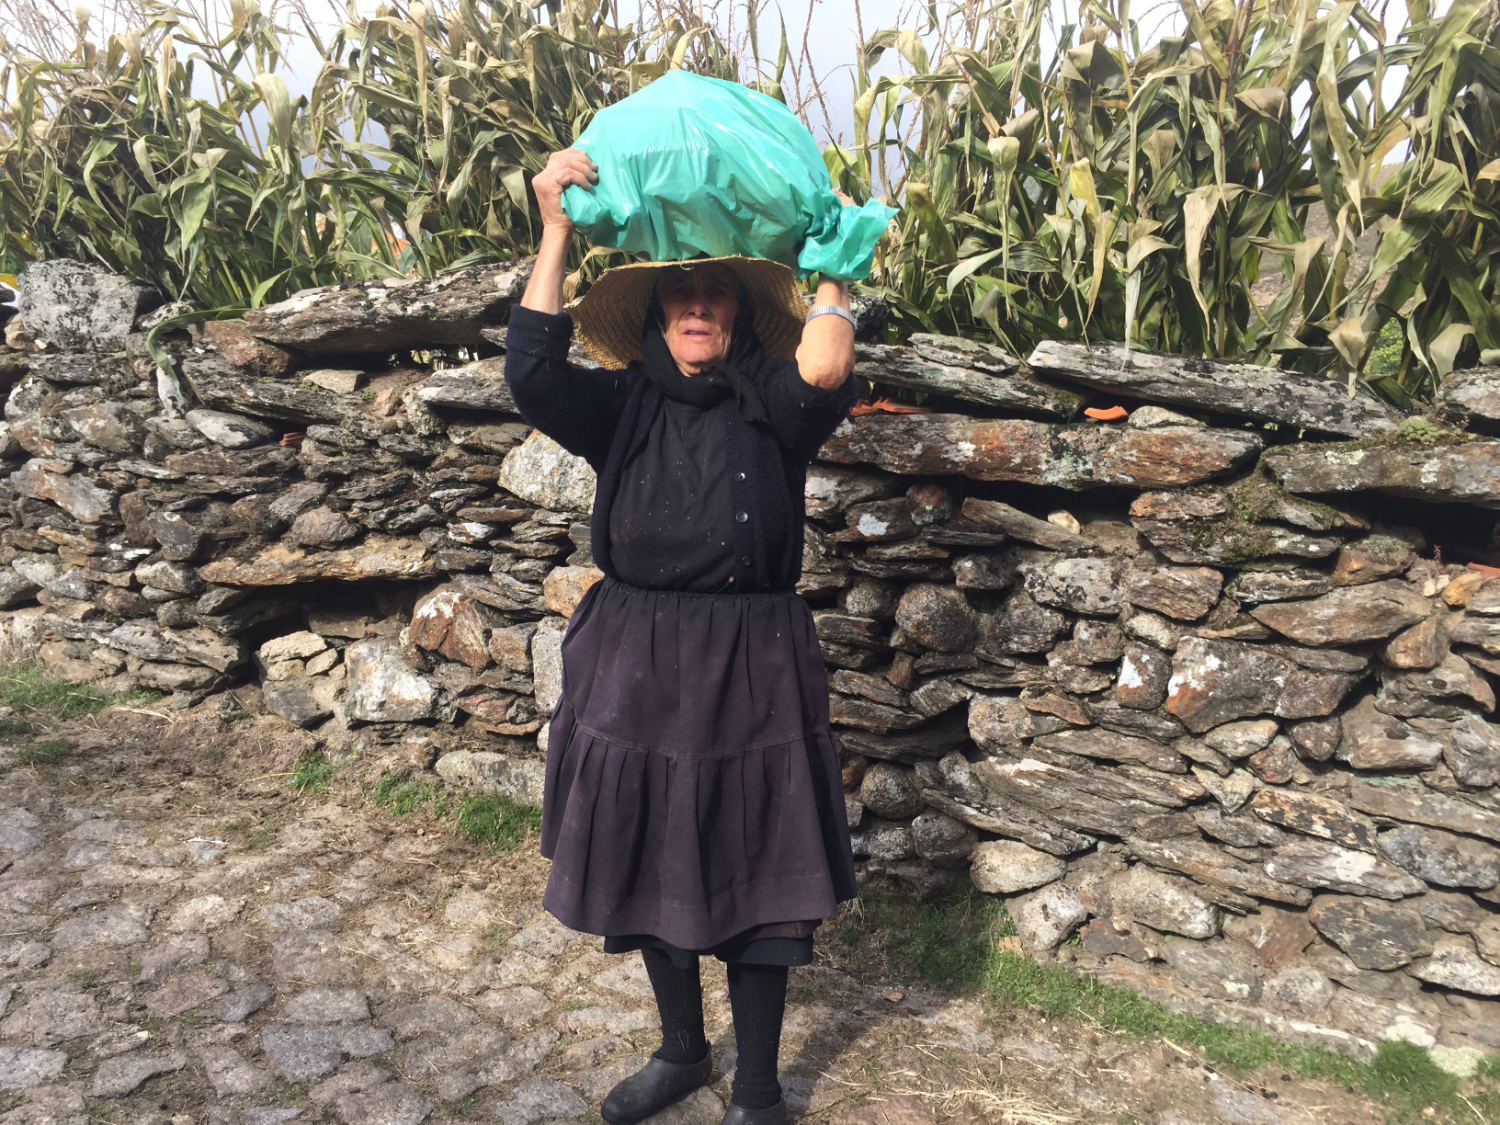 n old lady carrying maize cobs on her head